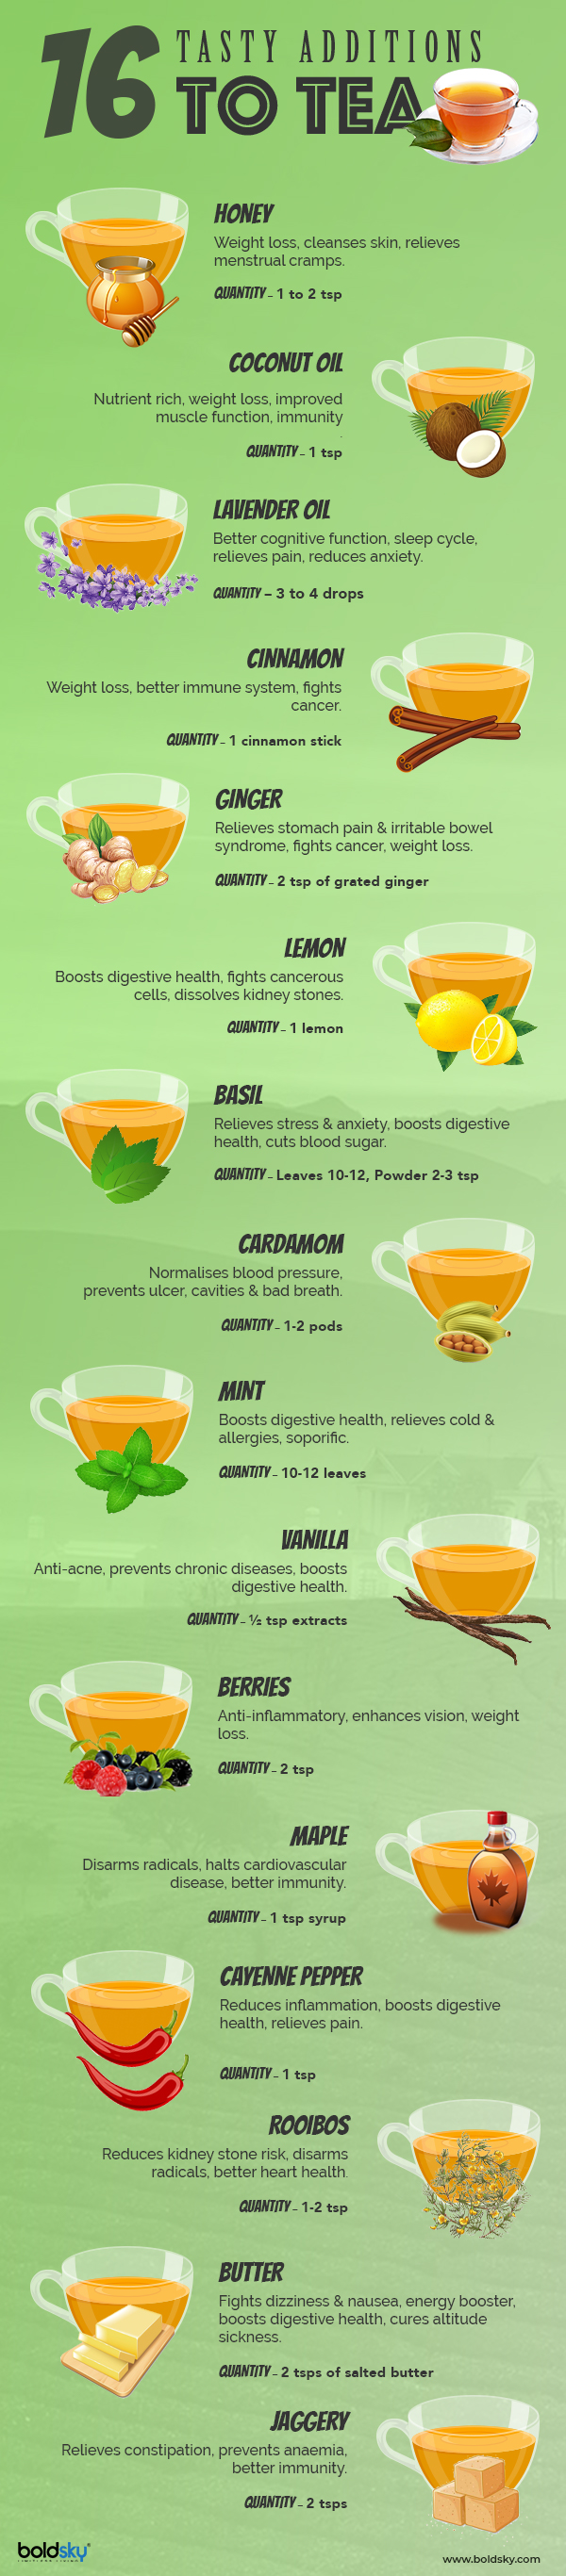 Info-graphics Benefits of the Daily Tea